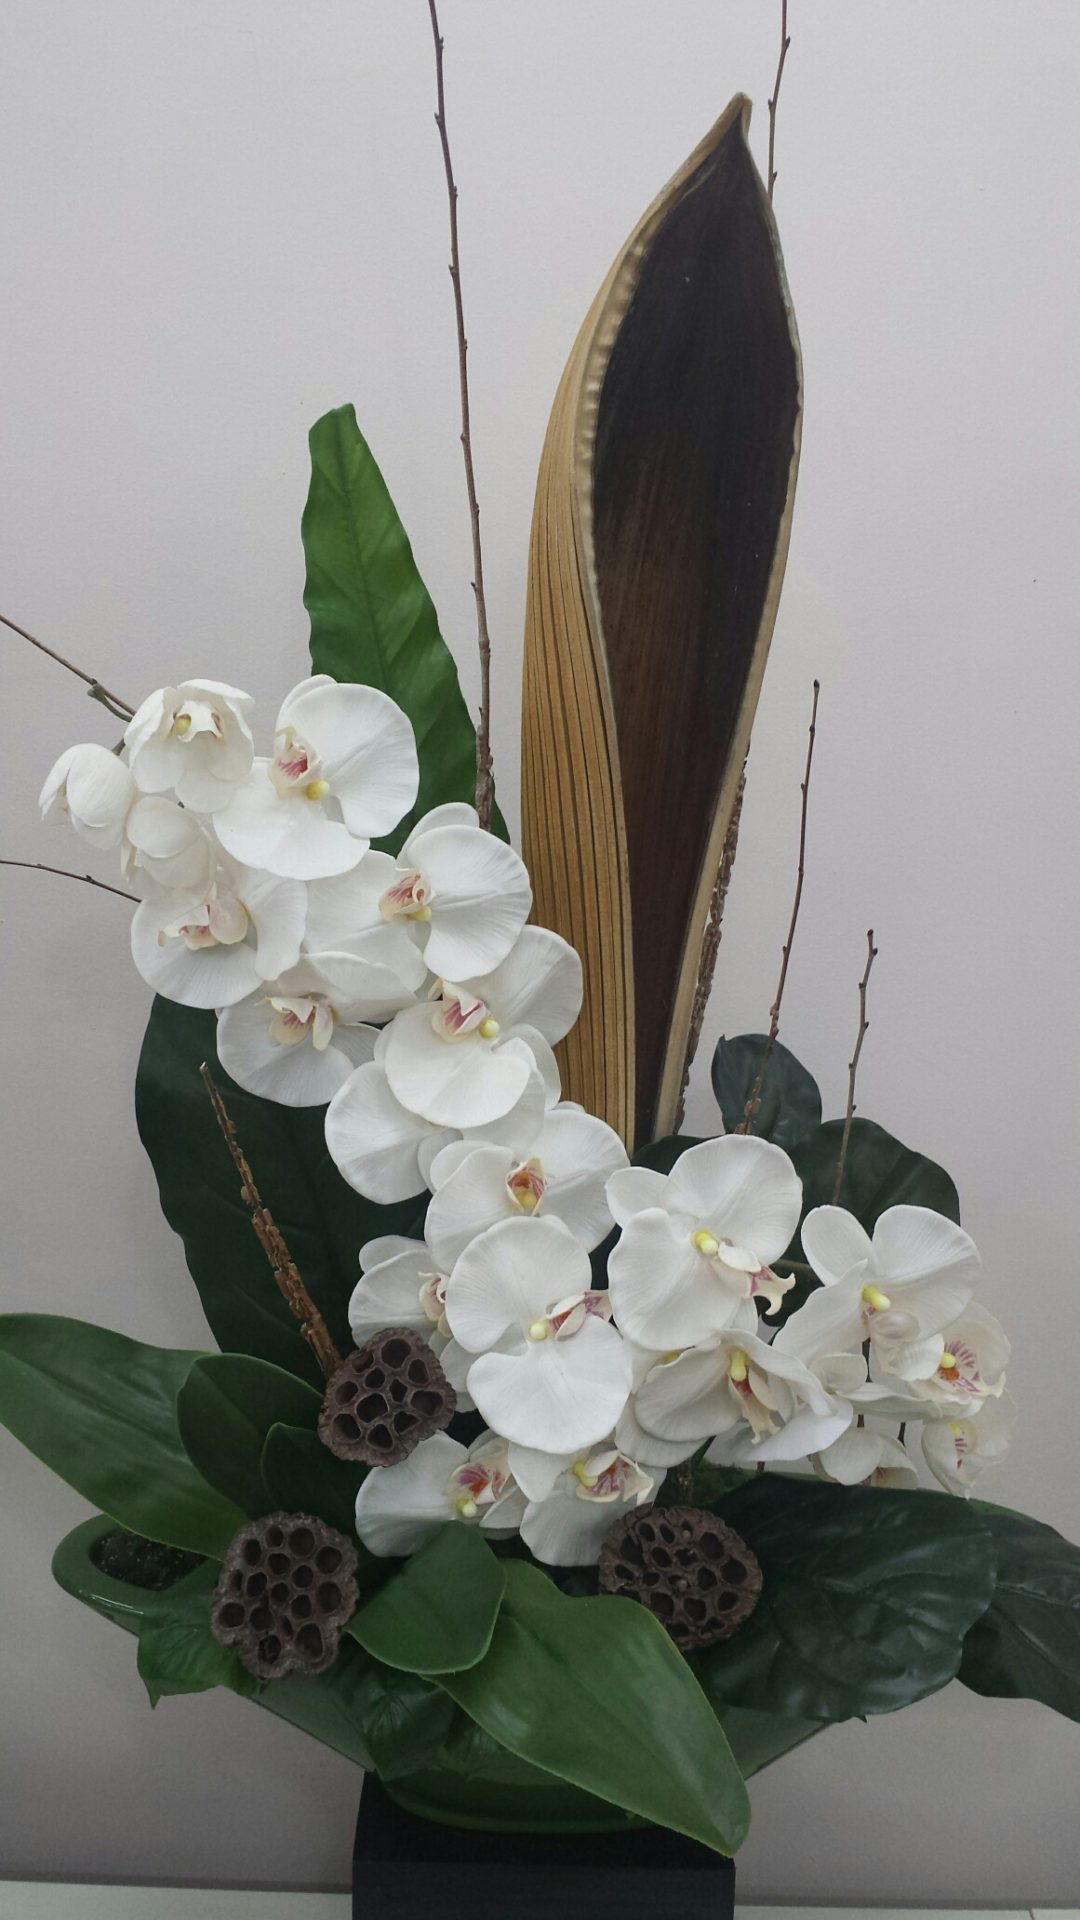 Modern orchid, Lotus pod and Palm husk design